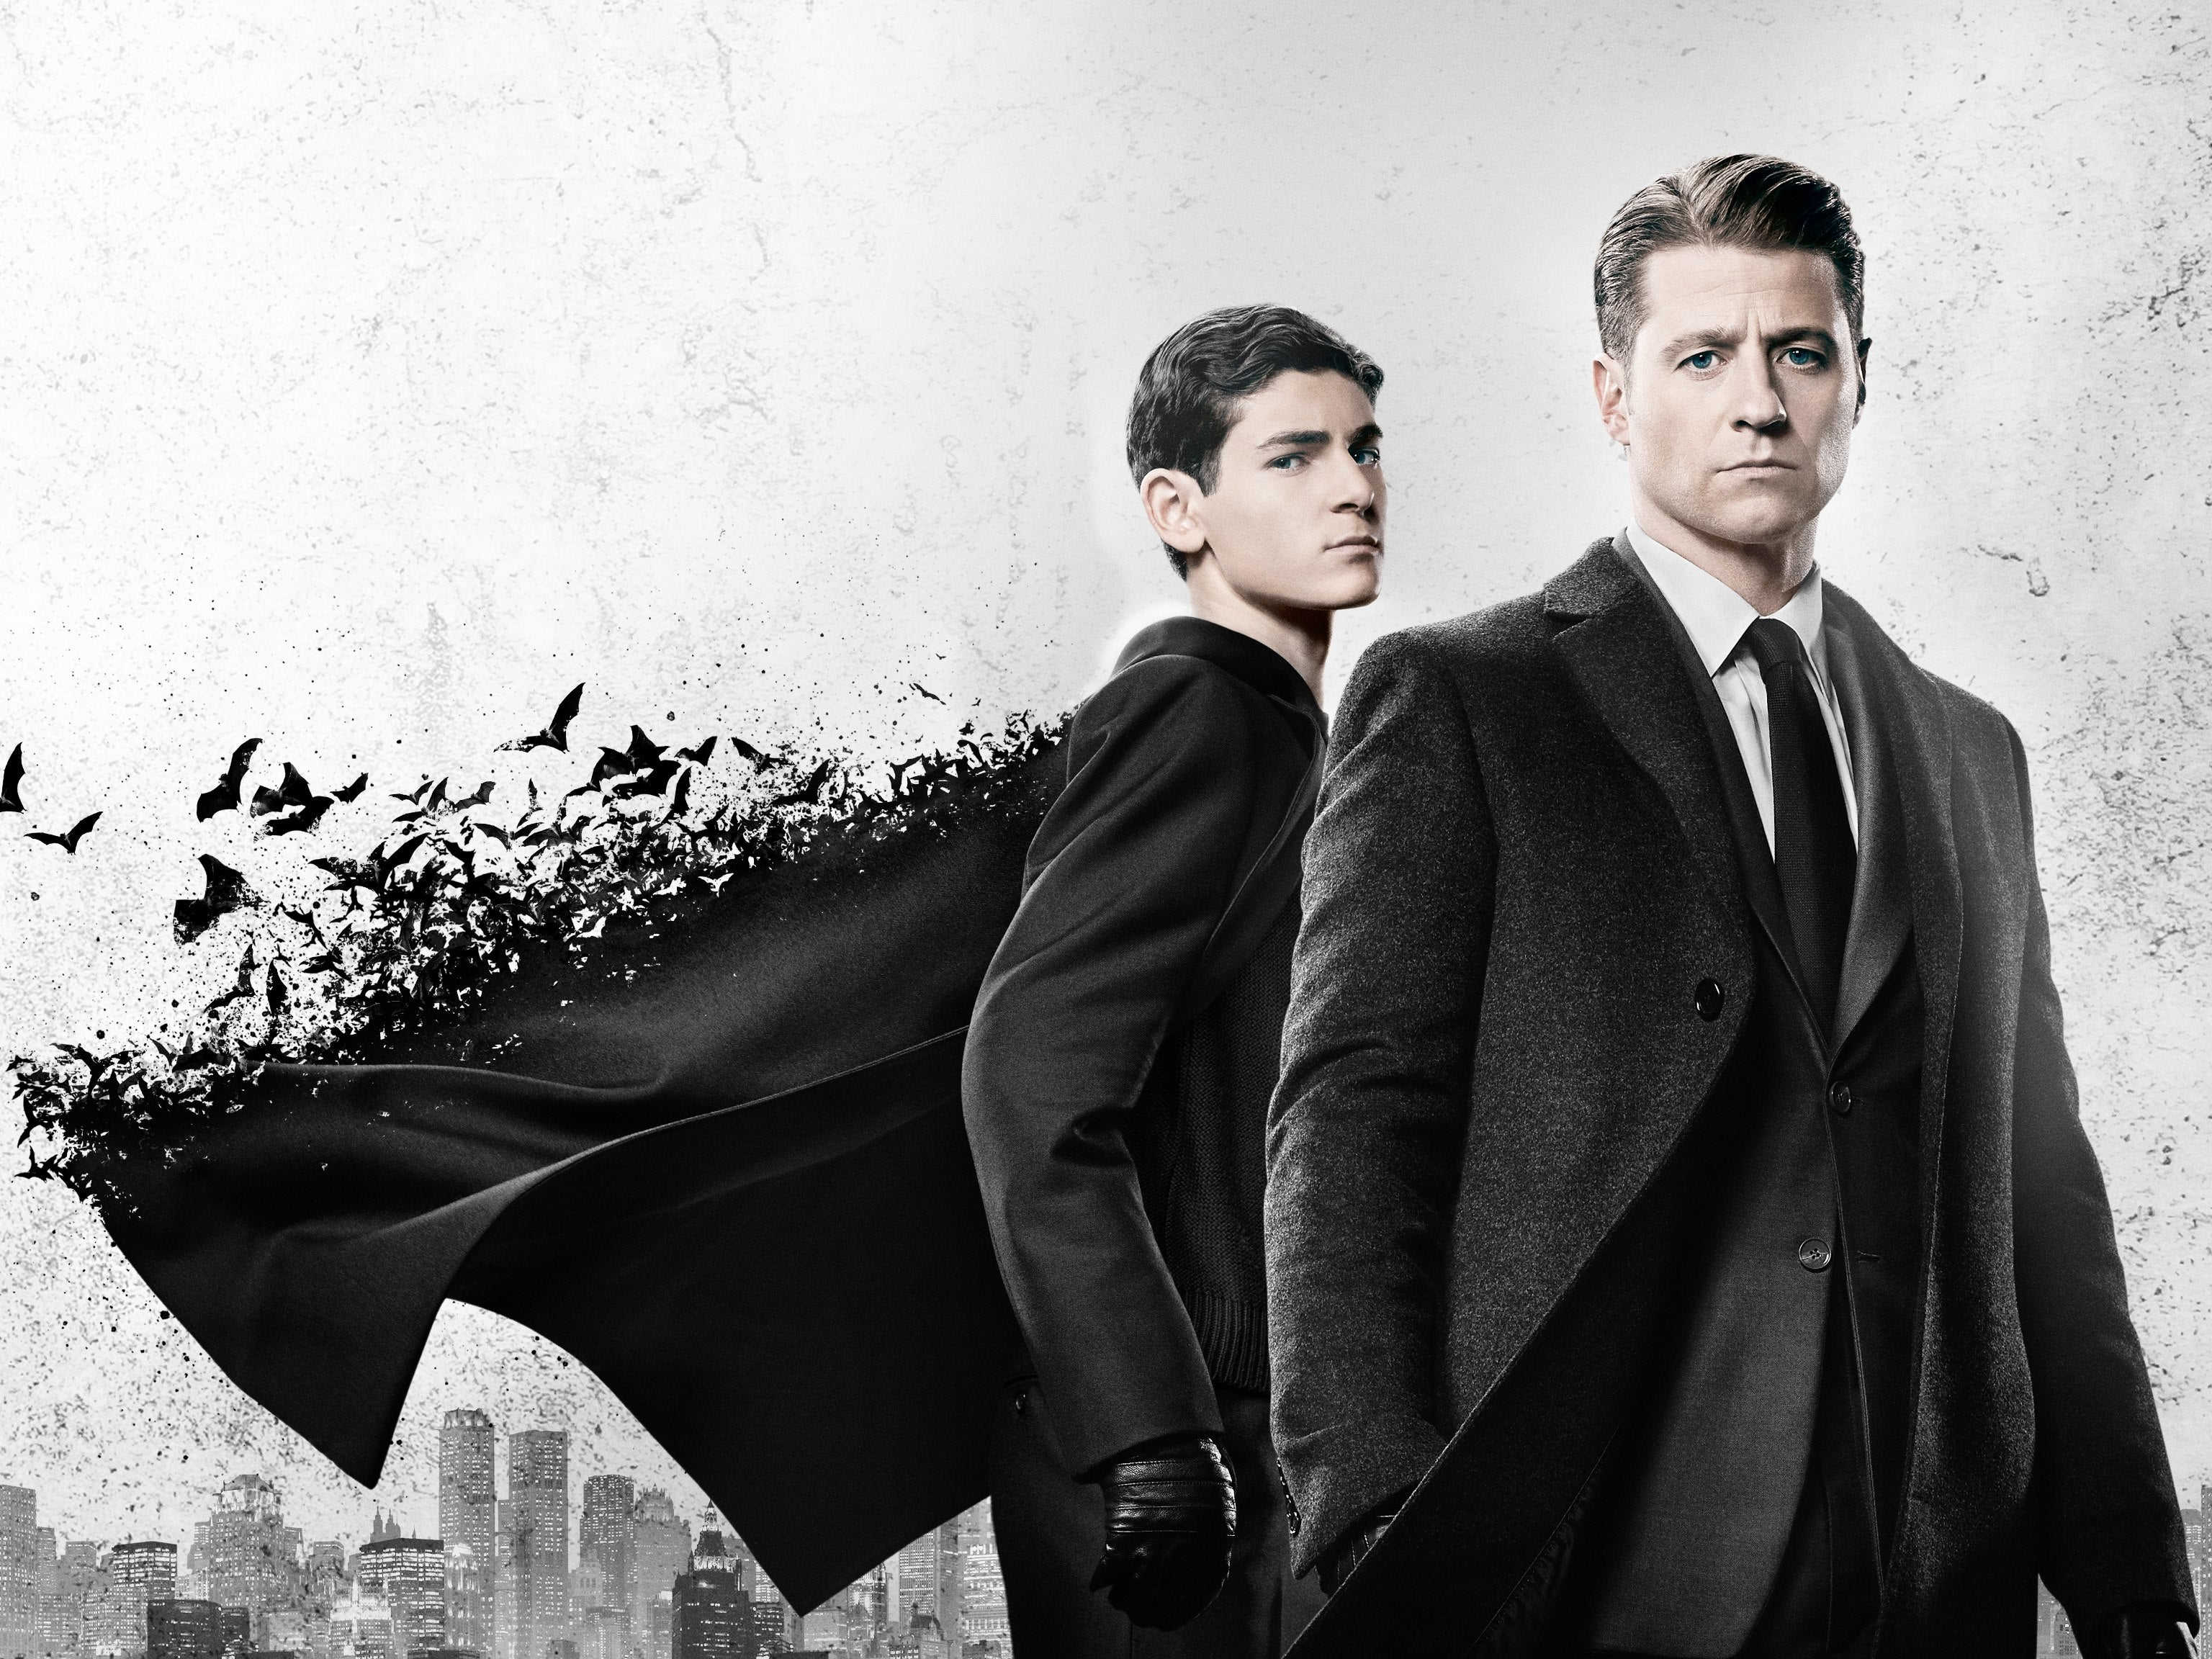 The 10 Craziest Things That Happened On Gotham This Season